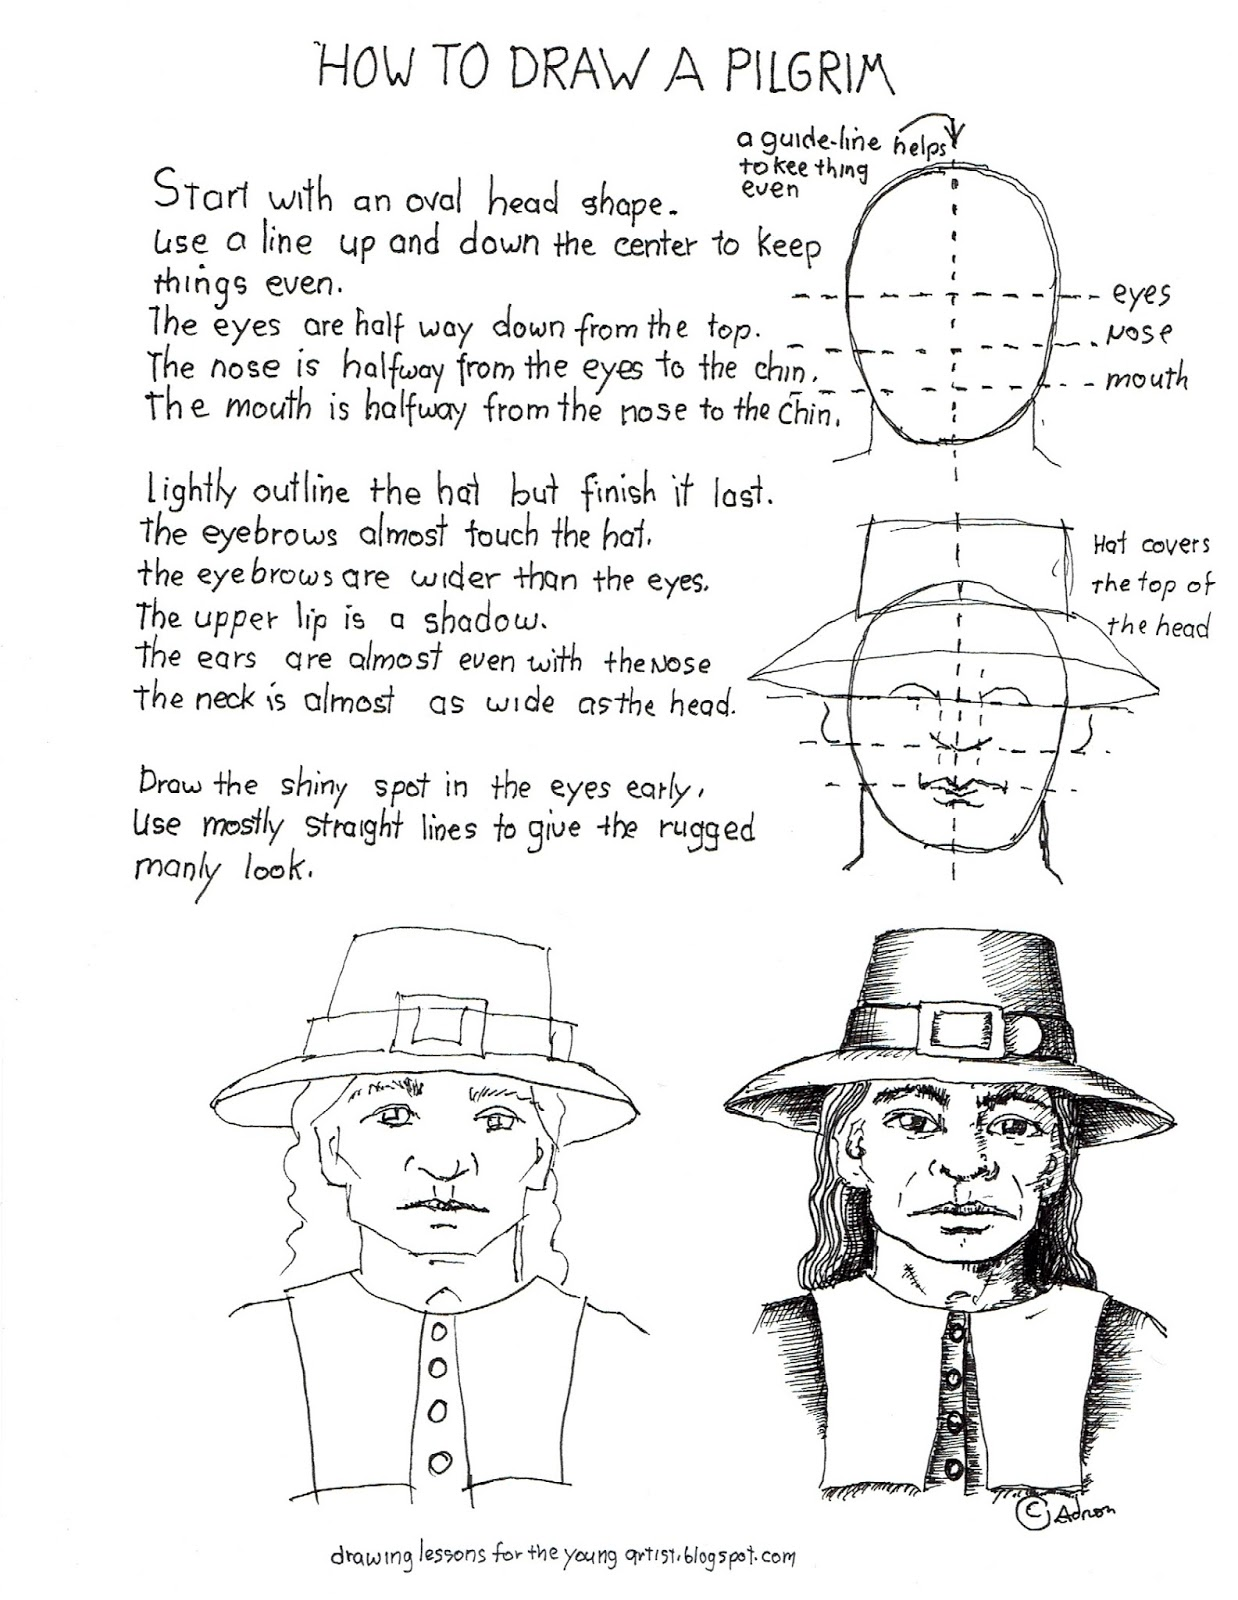 How To Draw Worksheets For The Young Artist How To Draw A Pilgrim Man S Face Worksheet